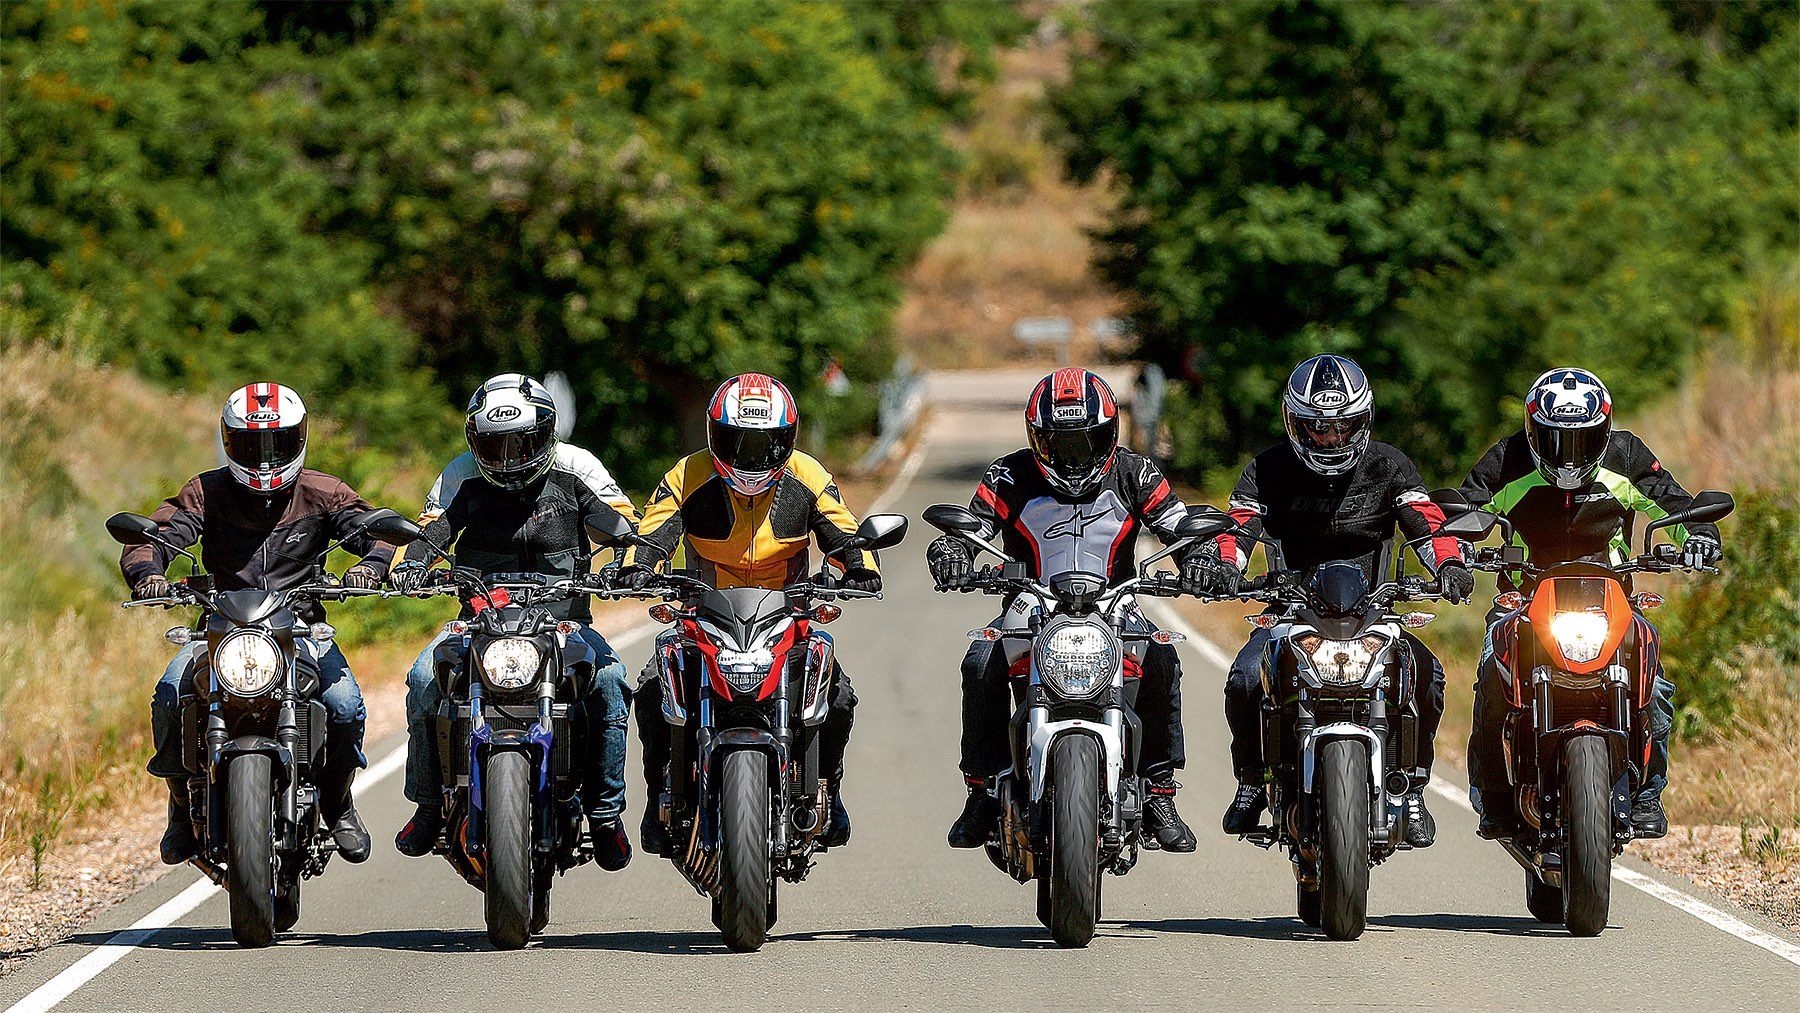 Comparativa Naked: MT07 vs Monster 797 vs SV650 vs Z650 vs CB650F vs 690 Duke